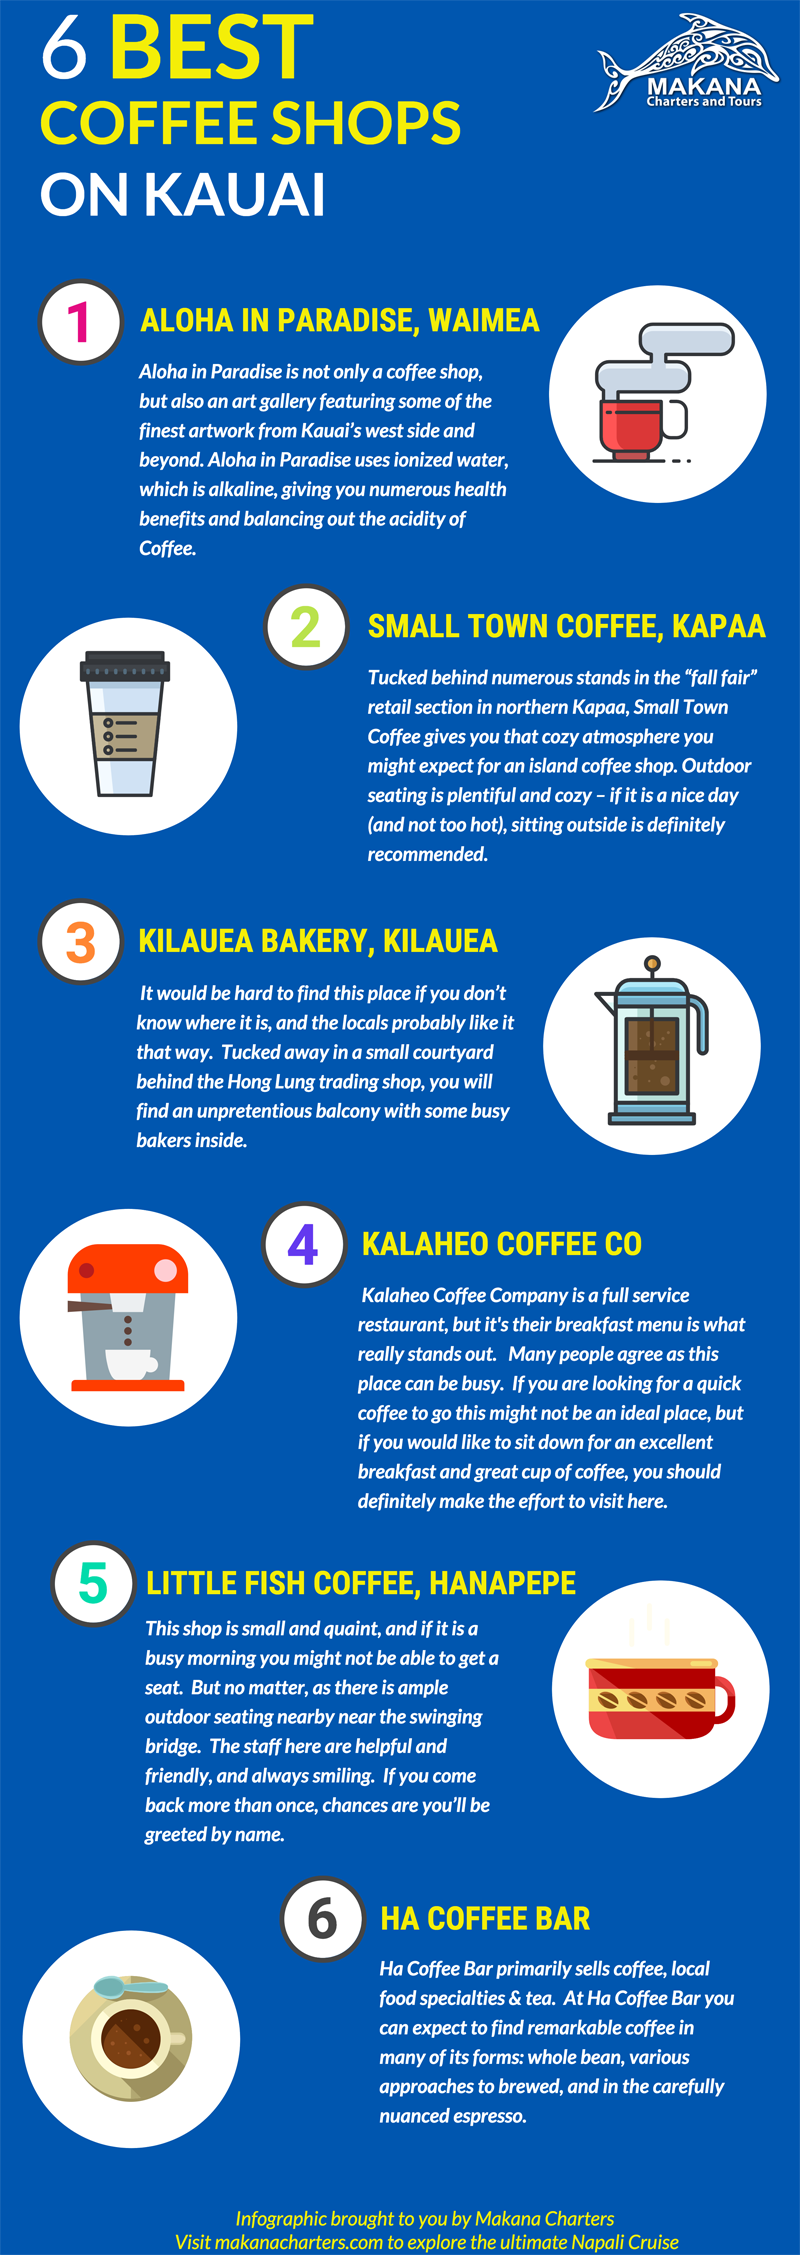 6 Best Coffee Shops on Kauai